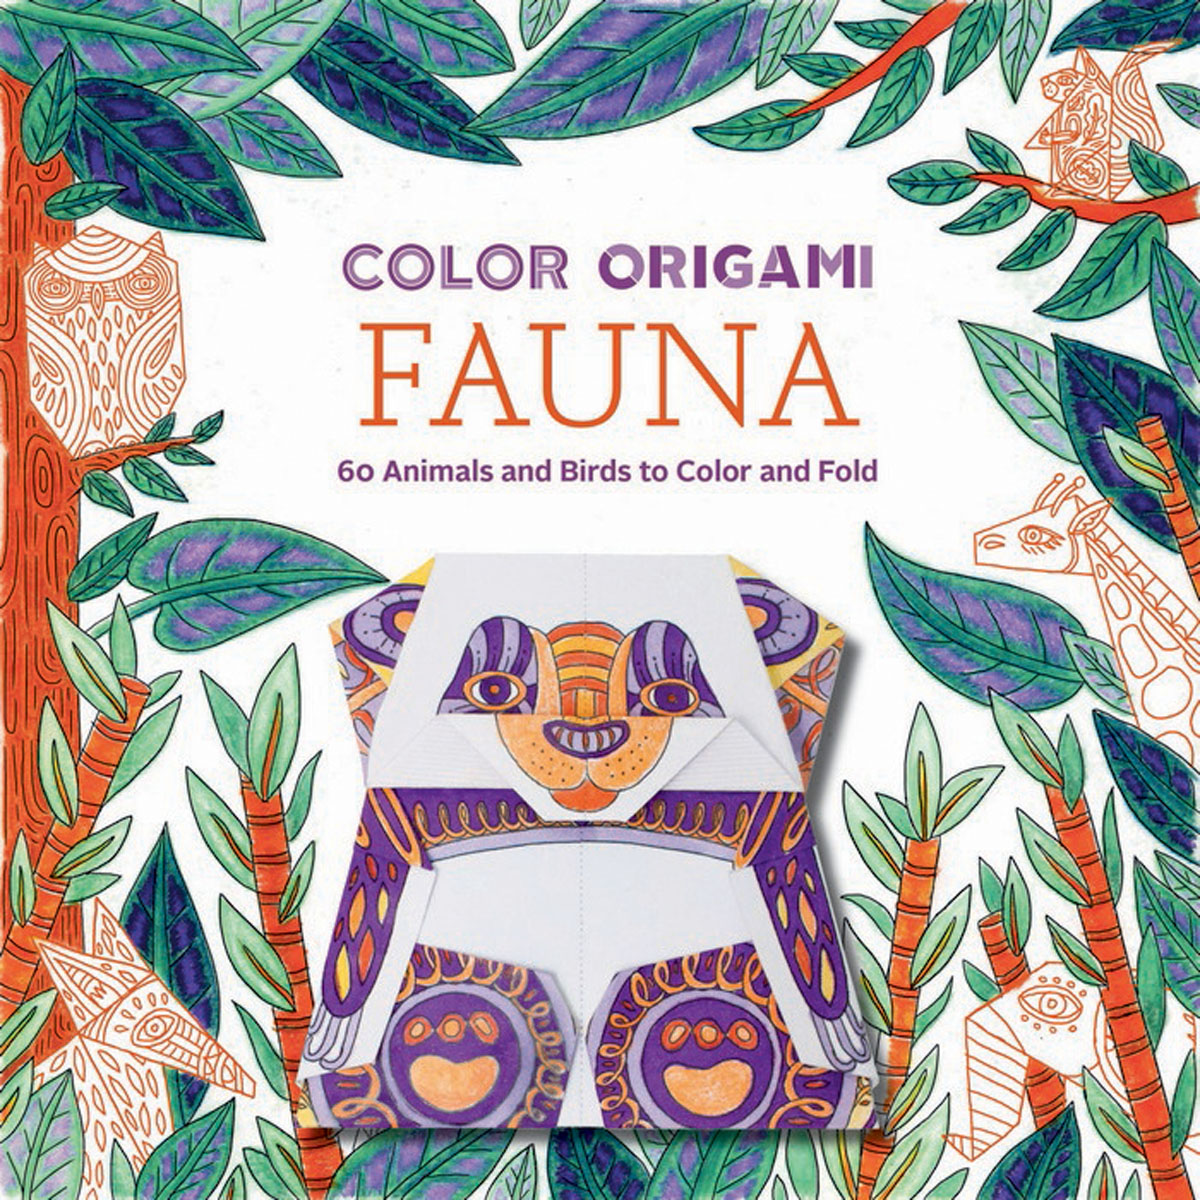 Color Origami: Fauna (Adult Coloring Book) fashion a coloring book of designer looks and accessories